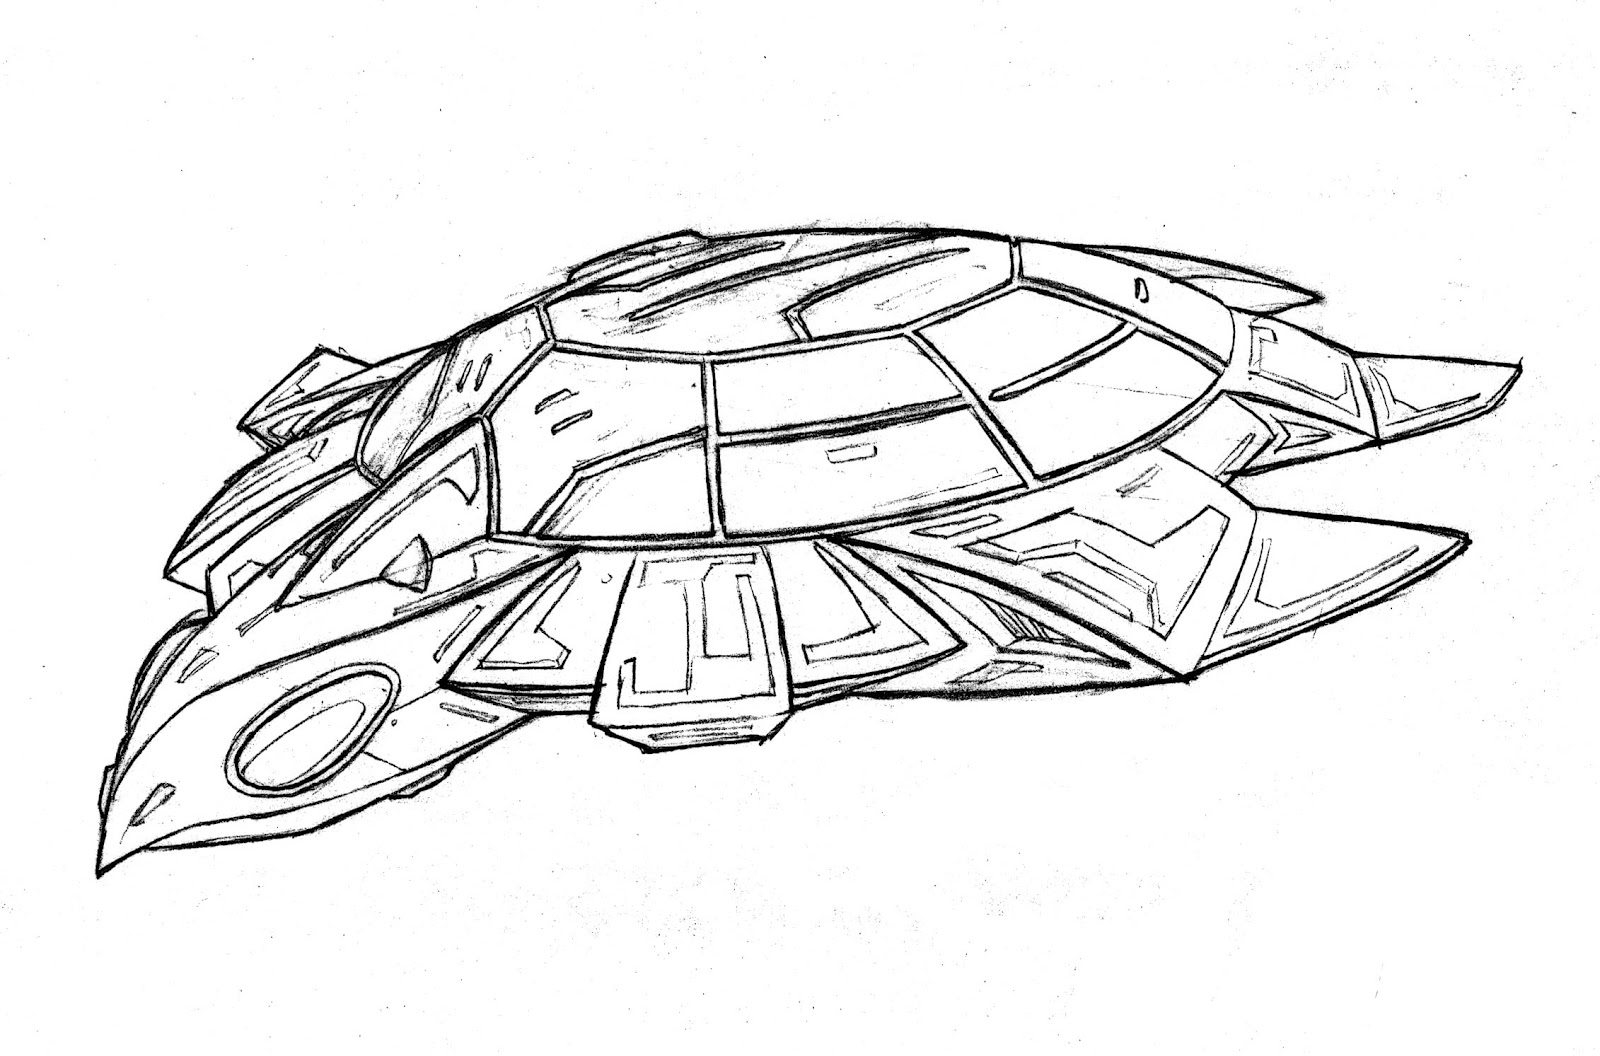 Peter Laird's TMNT Blog: Blast From The Past #545: April